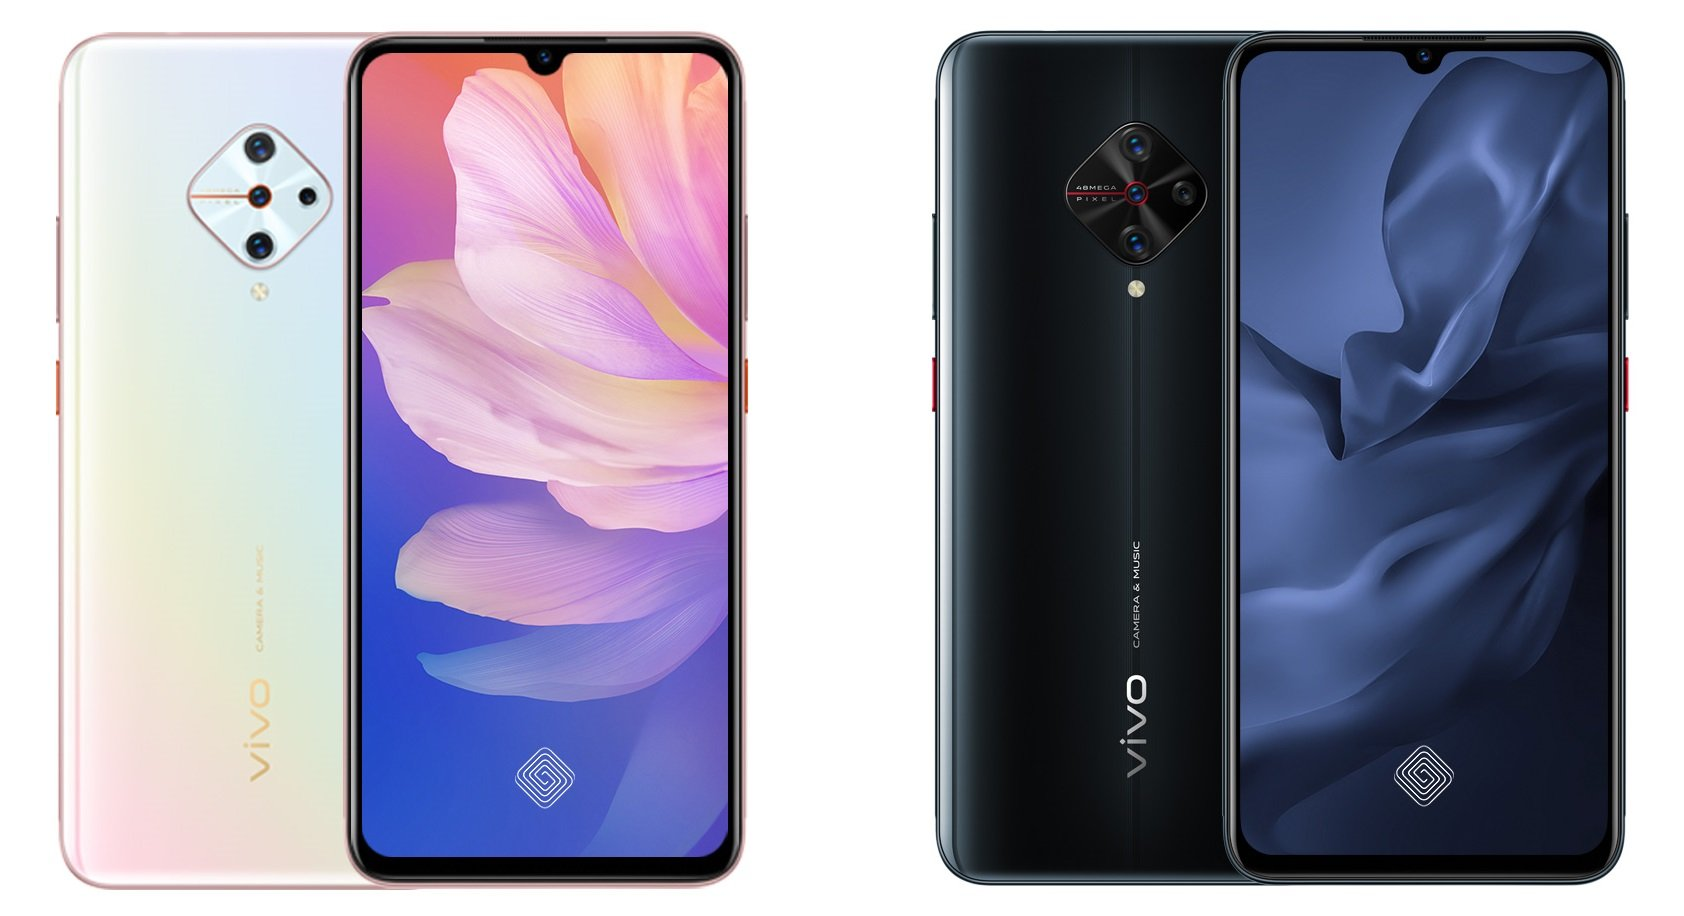 vivo s1 pro color options